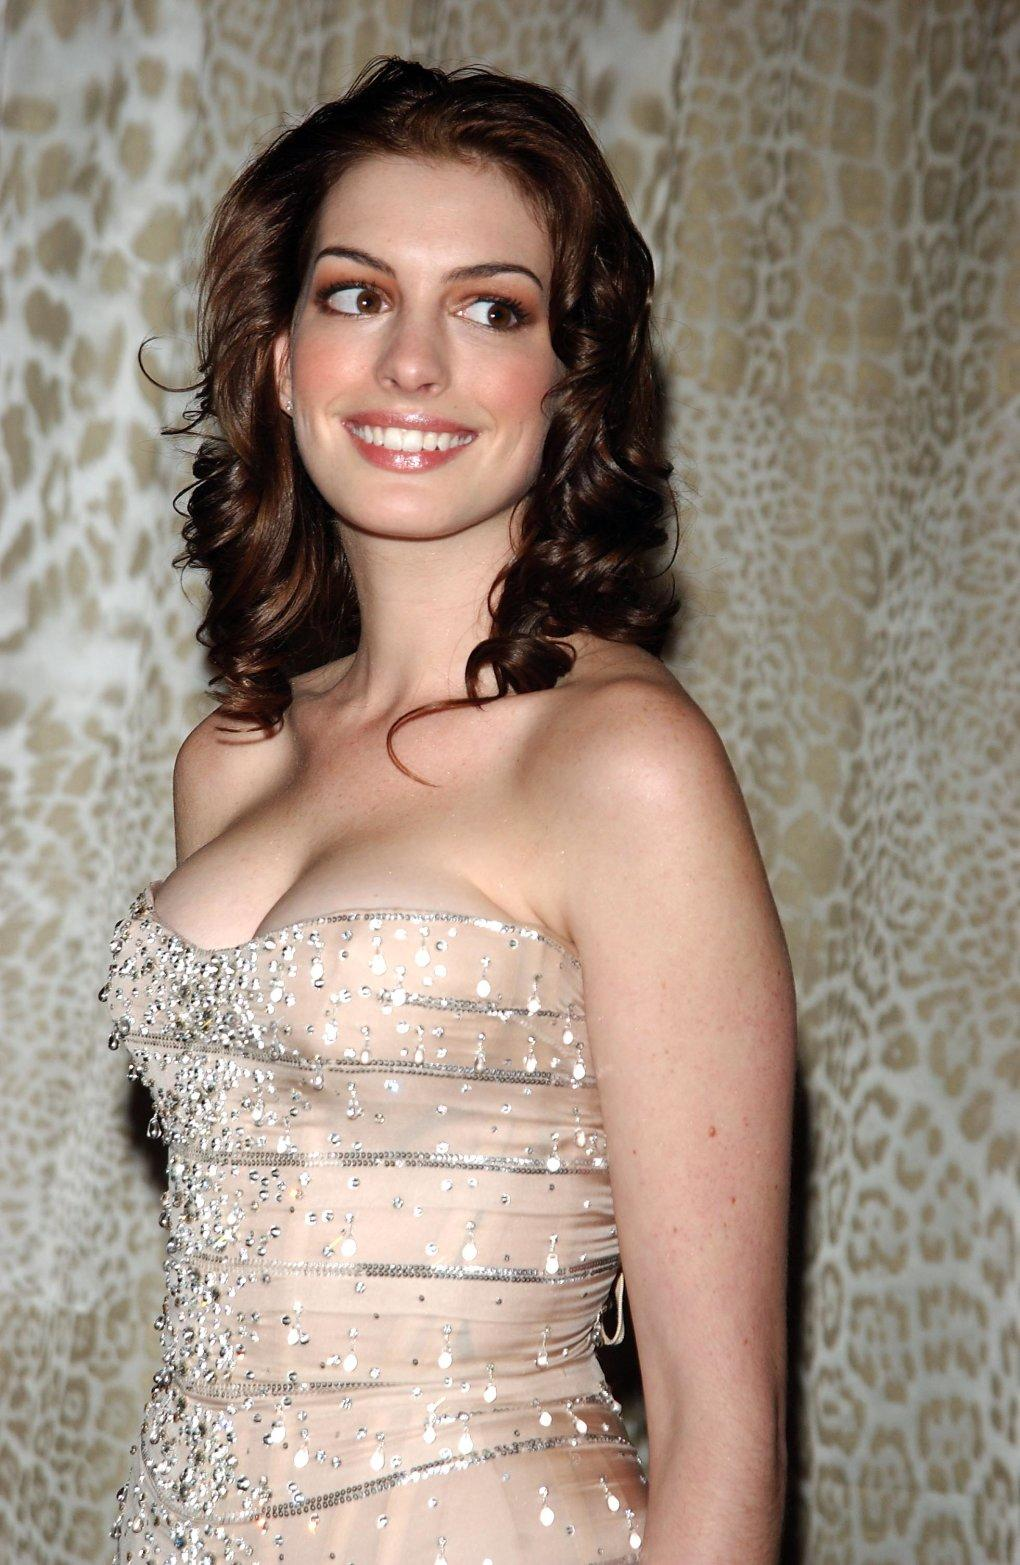 Anne Hathaway sexy side boobs pics